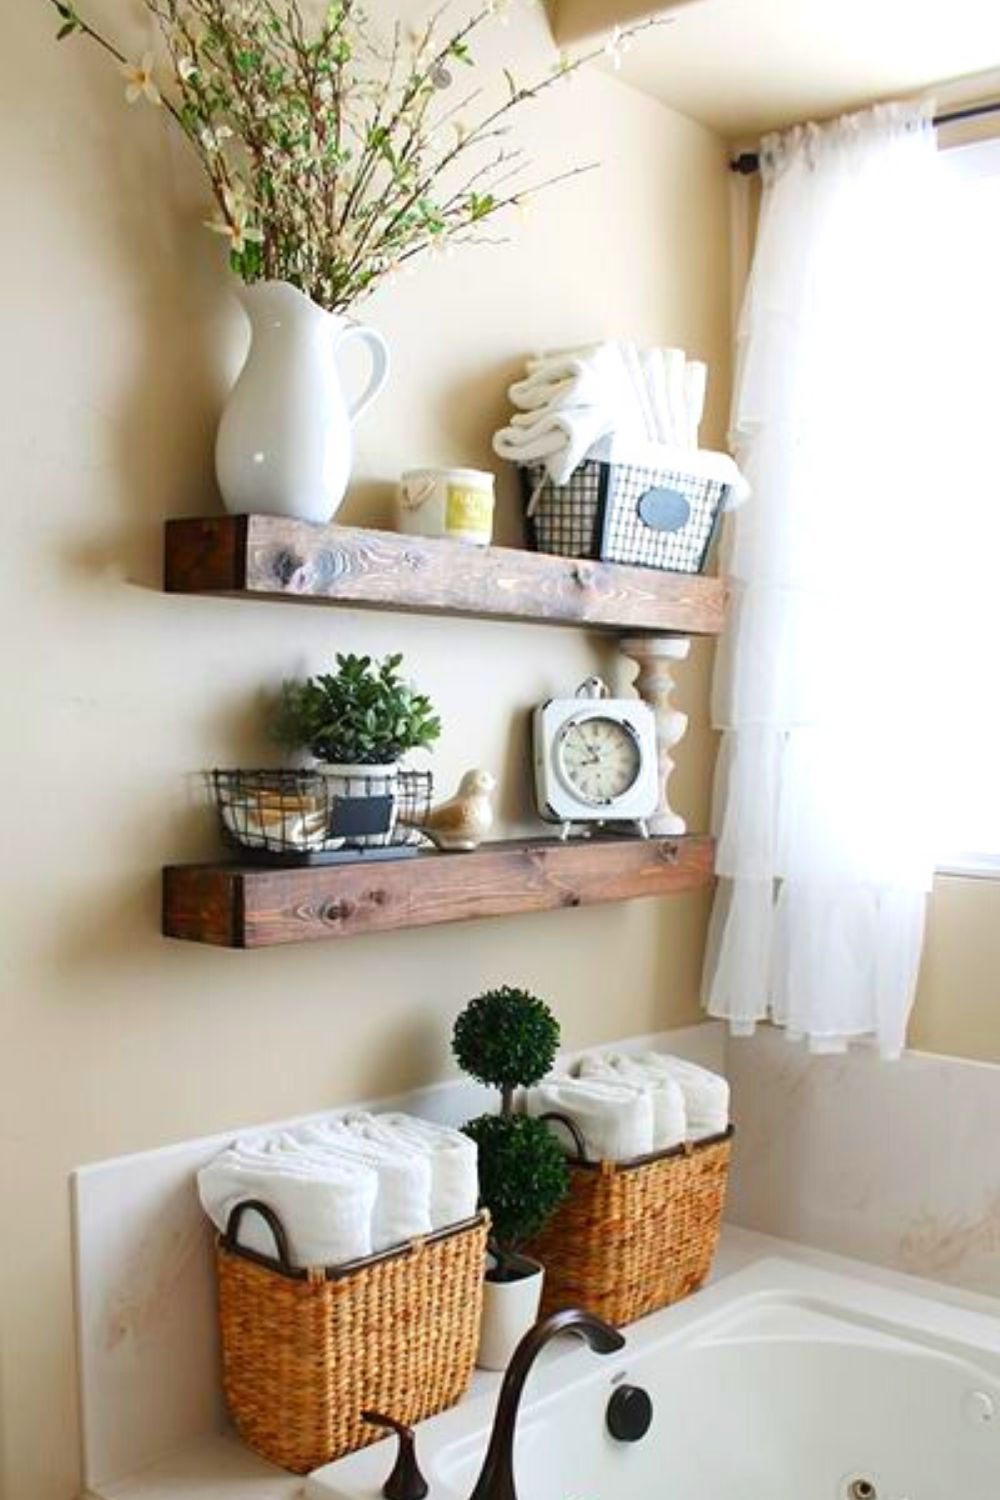 Pin on Spires home ideas